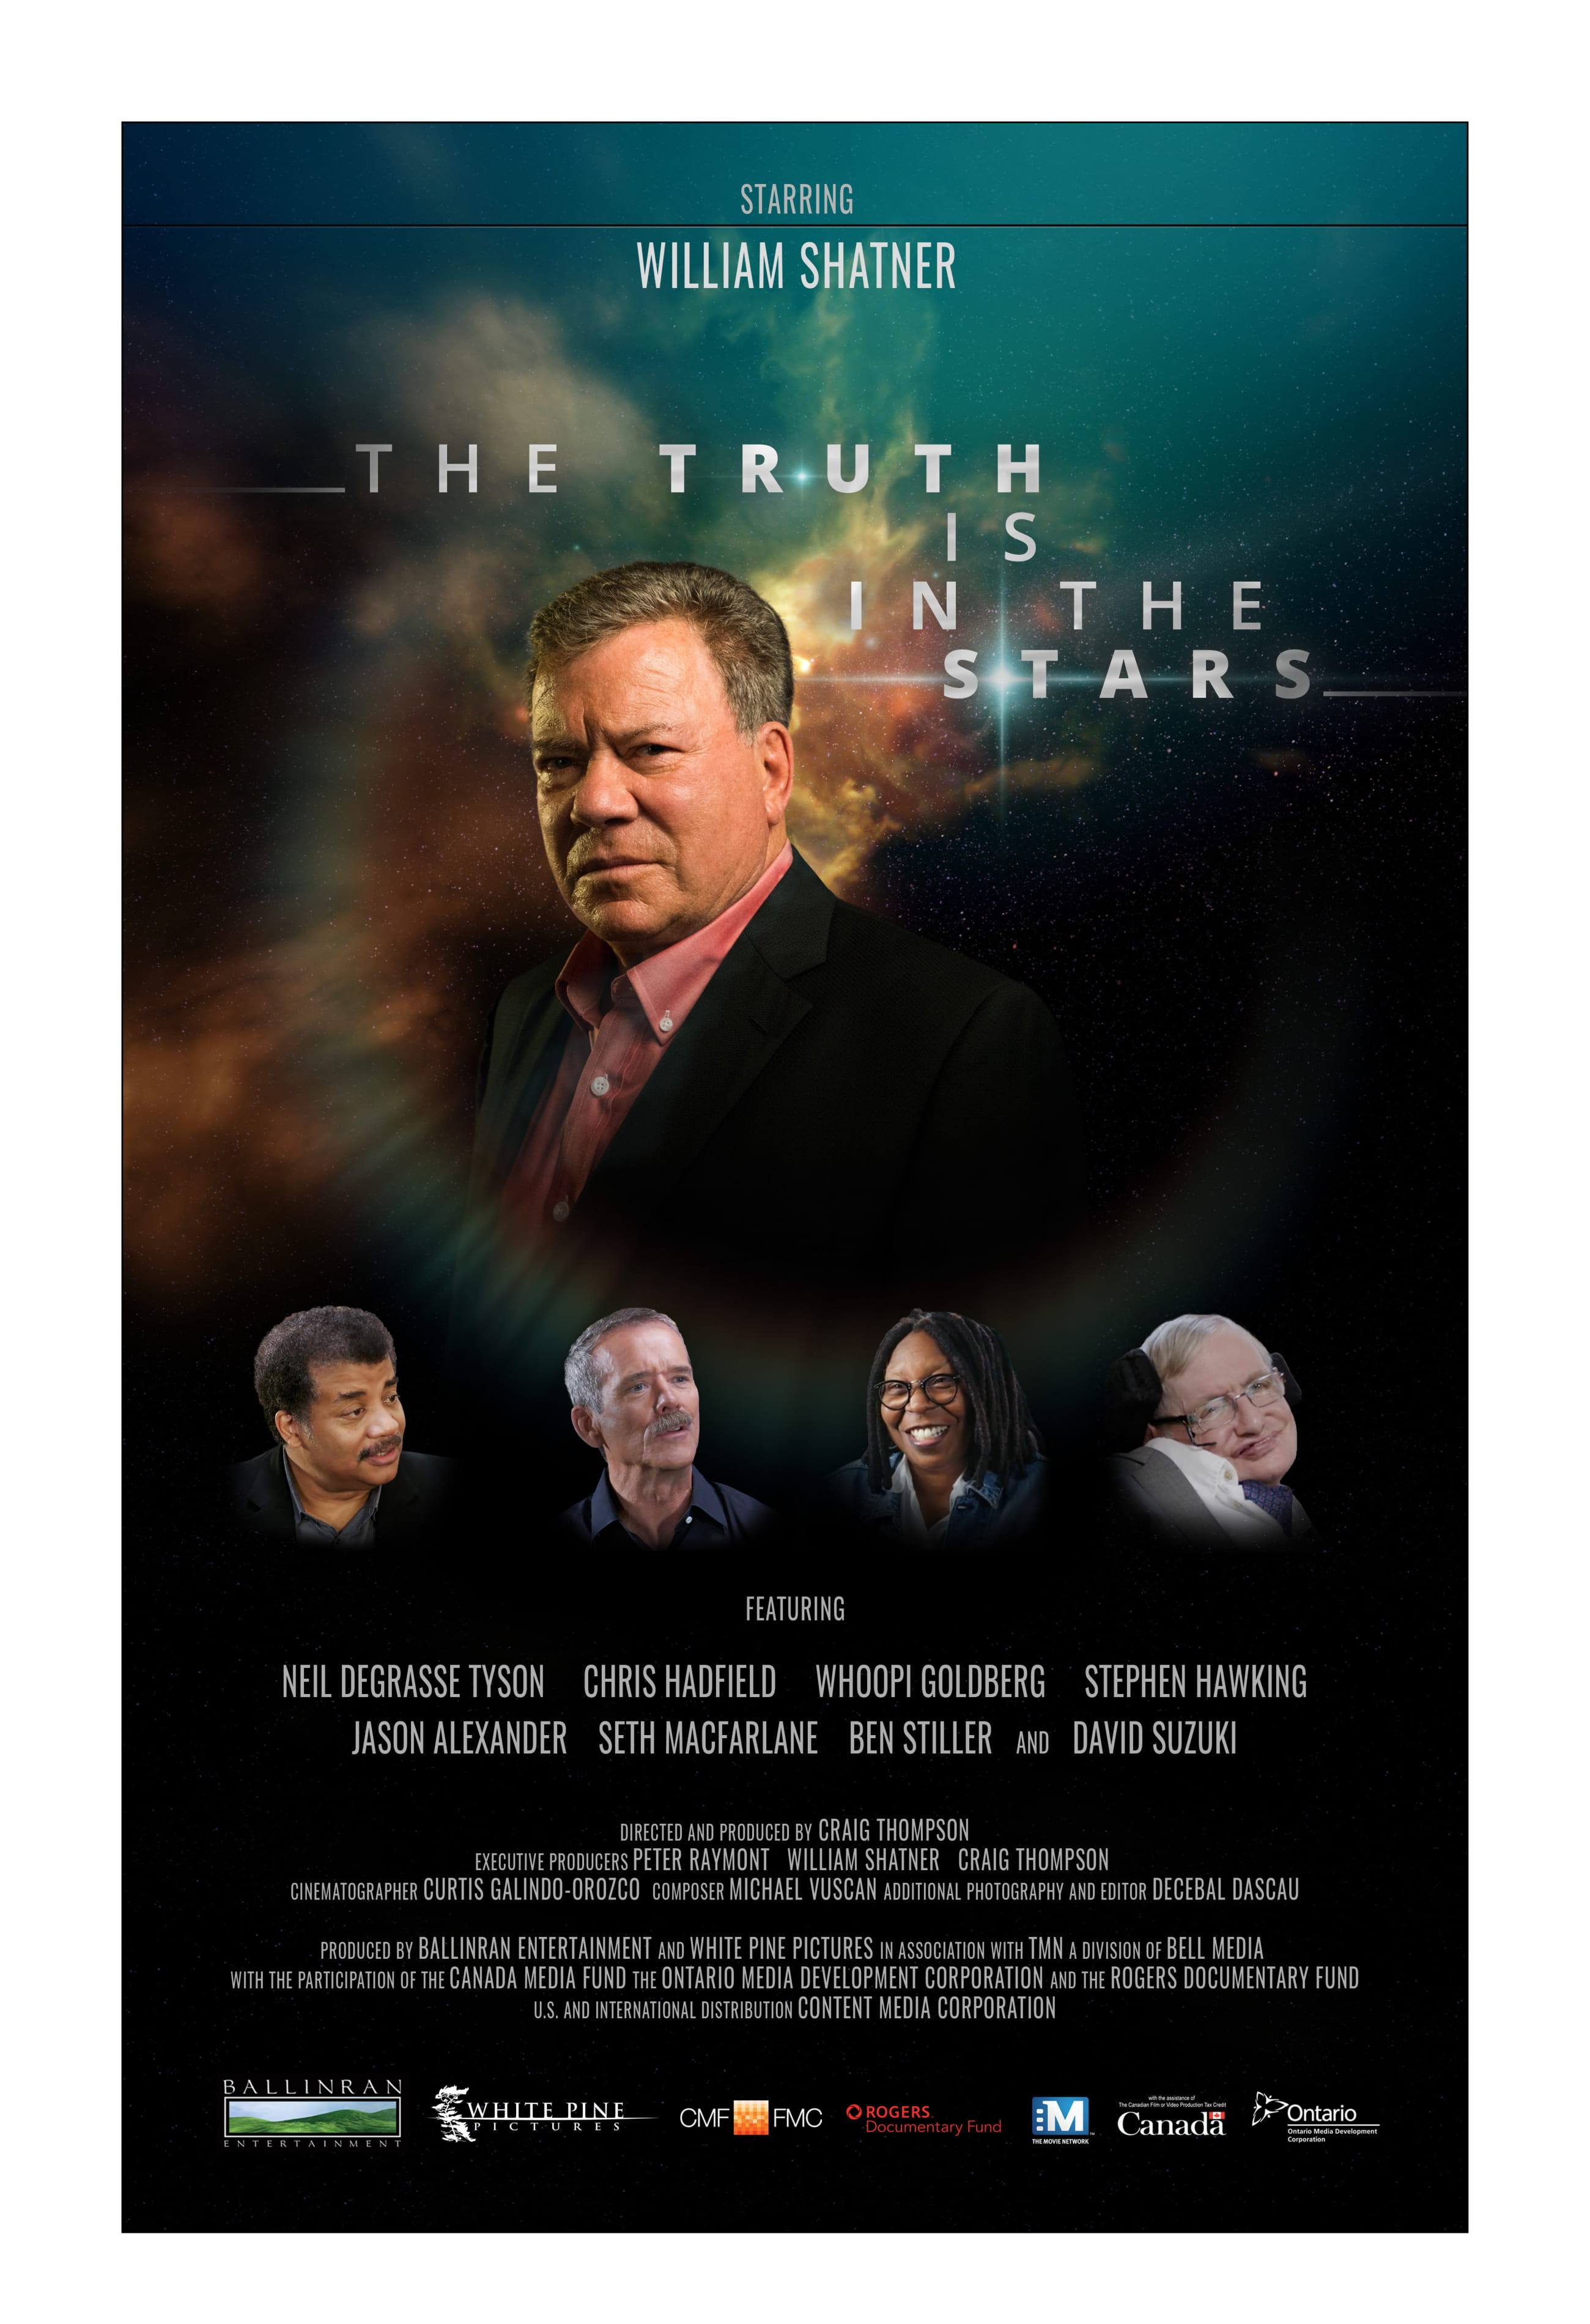 The Truth Is In The Stars 13x19 Hallway Poster 1